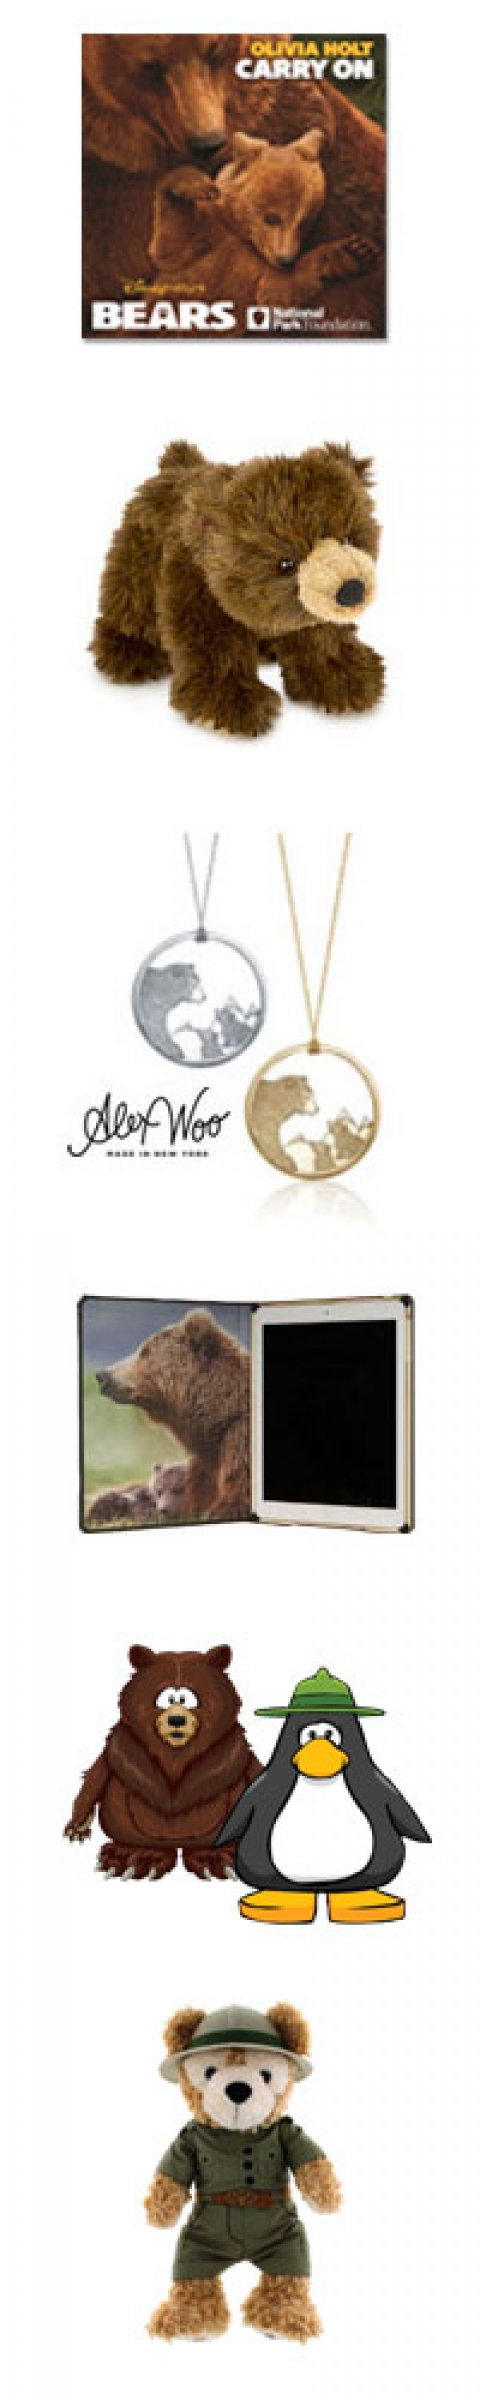 "Bears products, Olivia Holt's new single and BEARS anthem, ""Carry On"" , plush bear toy, Alex Woo necklace, iPad cover"